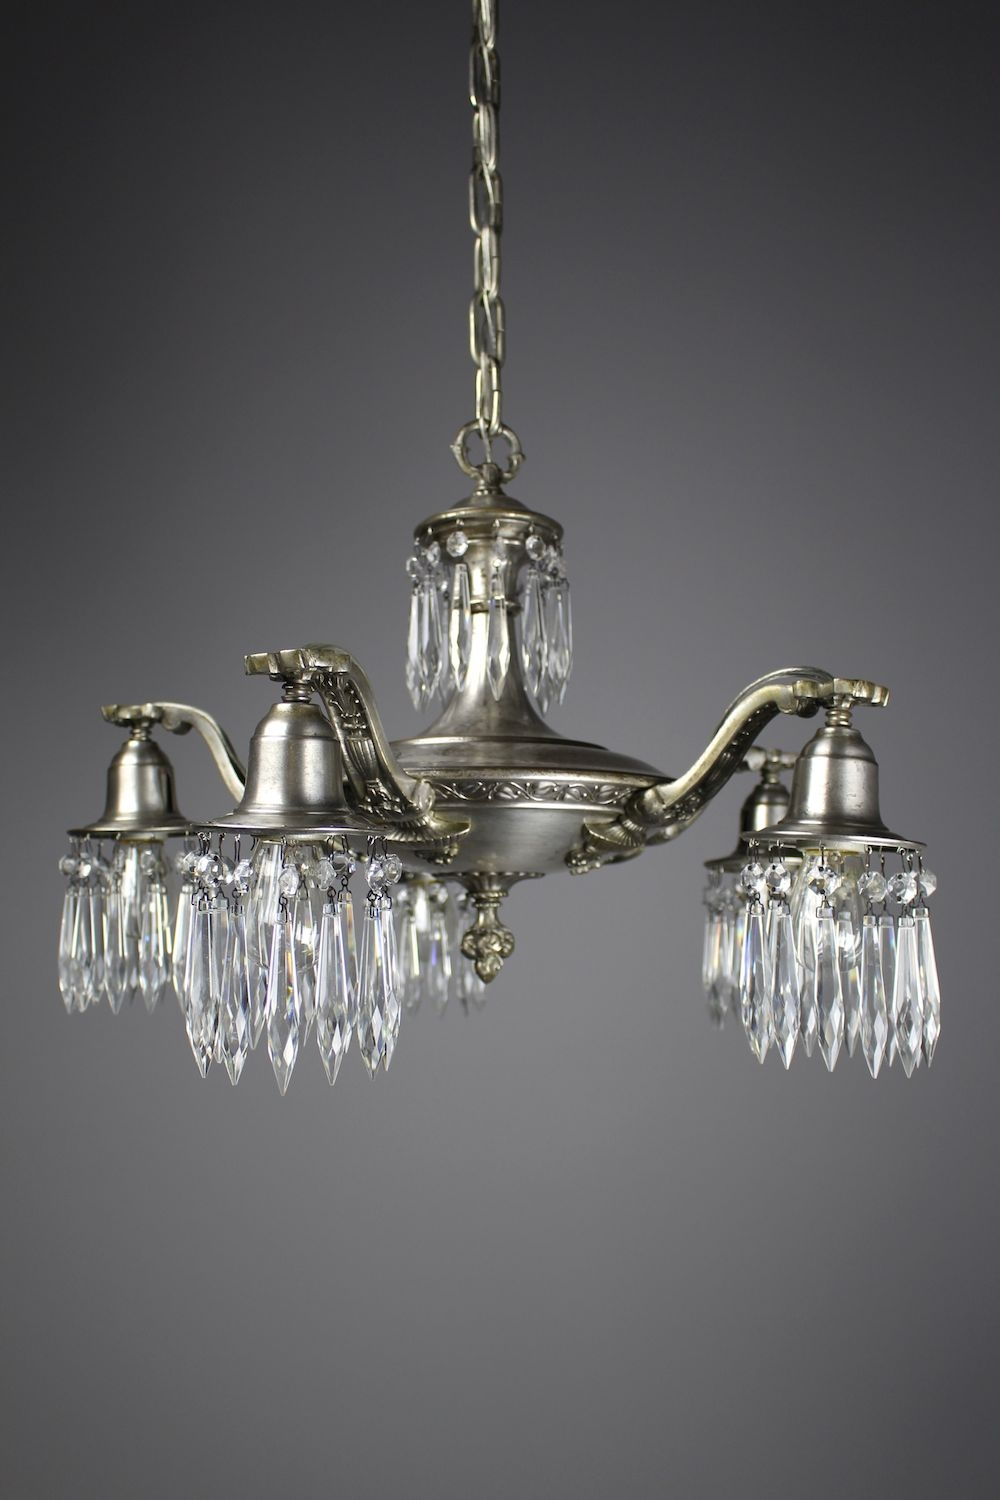 Edwardian Crystal Swag Chandelier 5 Light Regarding Edwardian Chandeliers (Image 5 of 15)